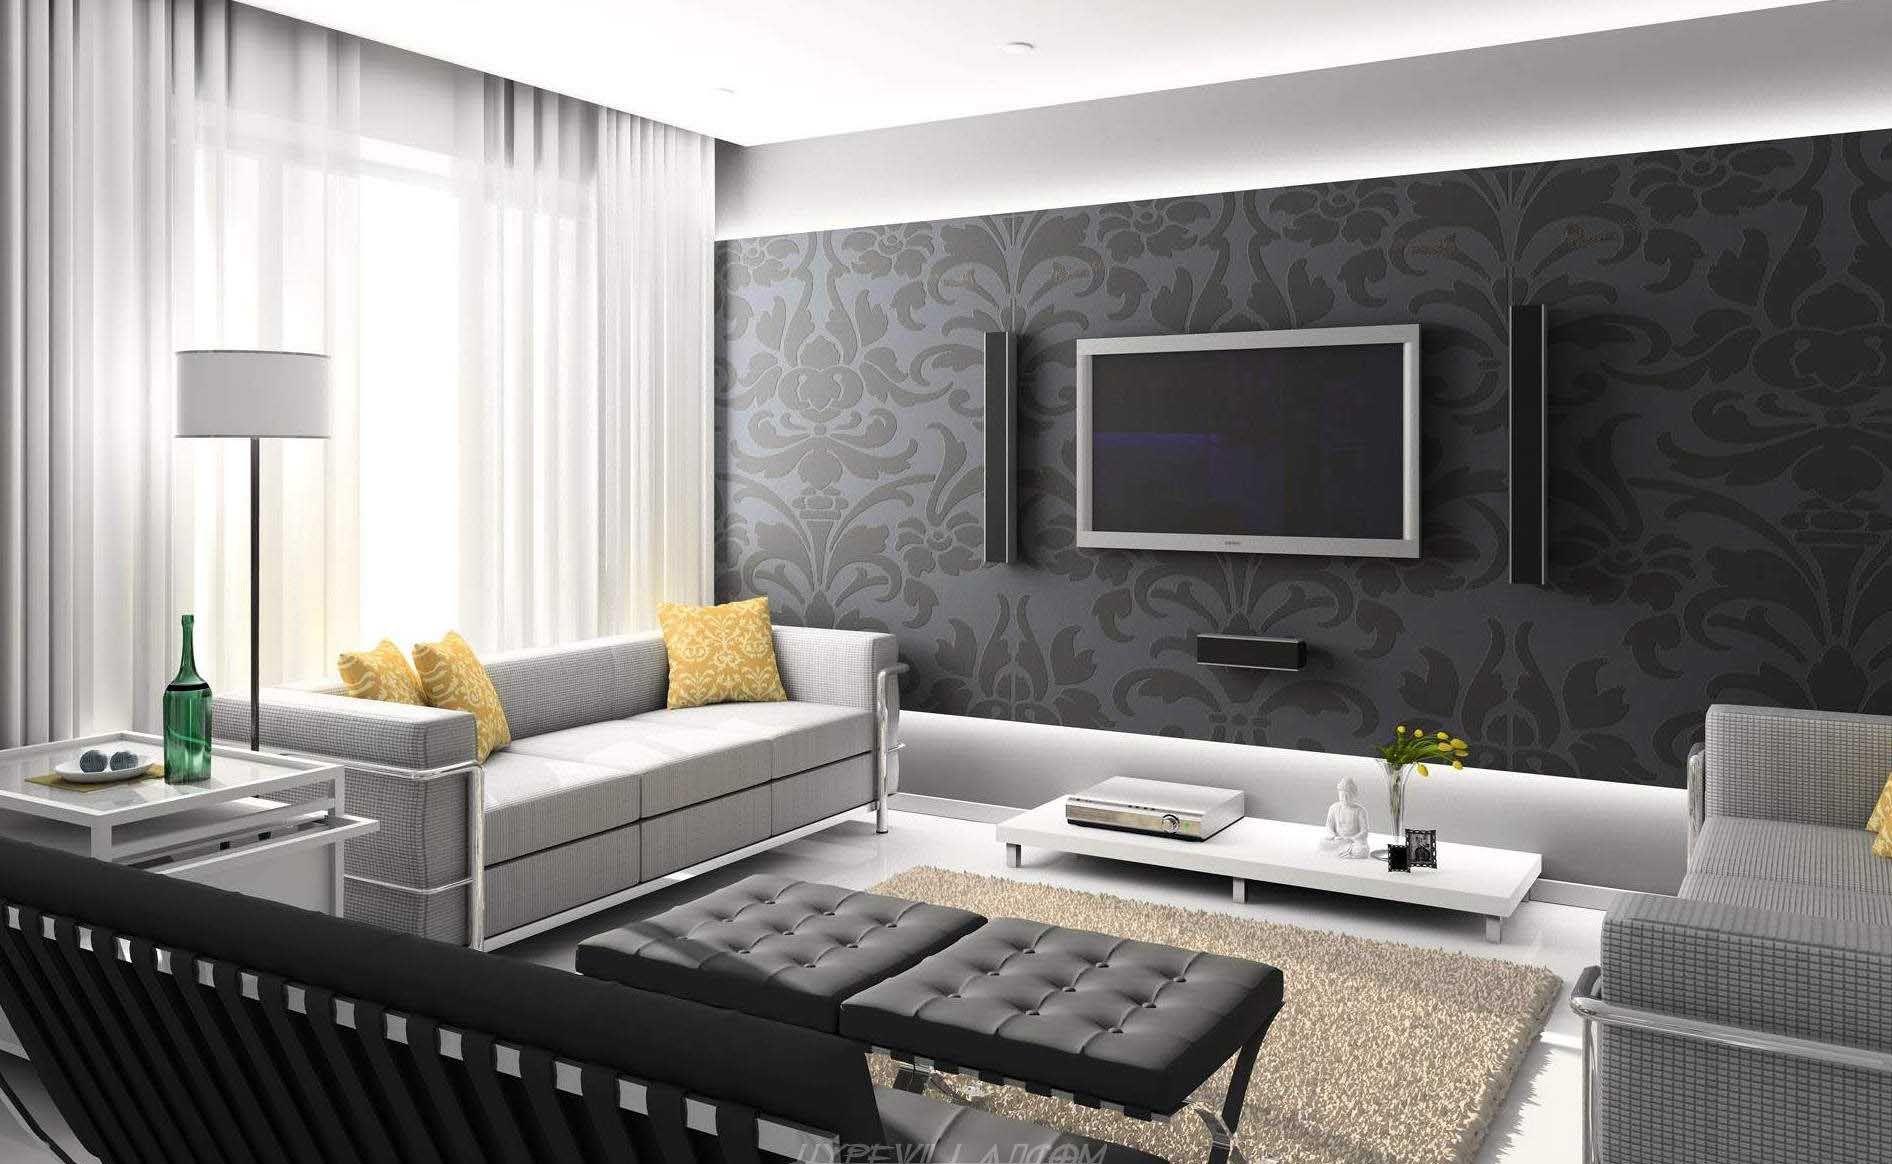 Mesmerize Urban Living Room Decorating Ideas: Elegant Urban Living Room  Design With Black Damask Wallpaper And White Lampshade Floor Lamp Also  Tufted Seat ...